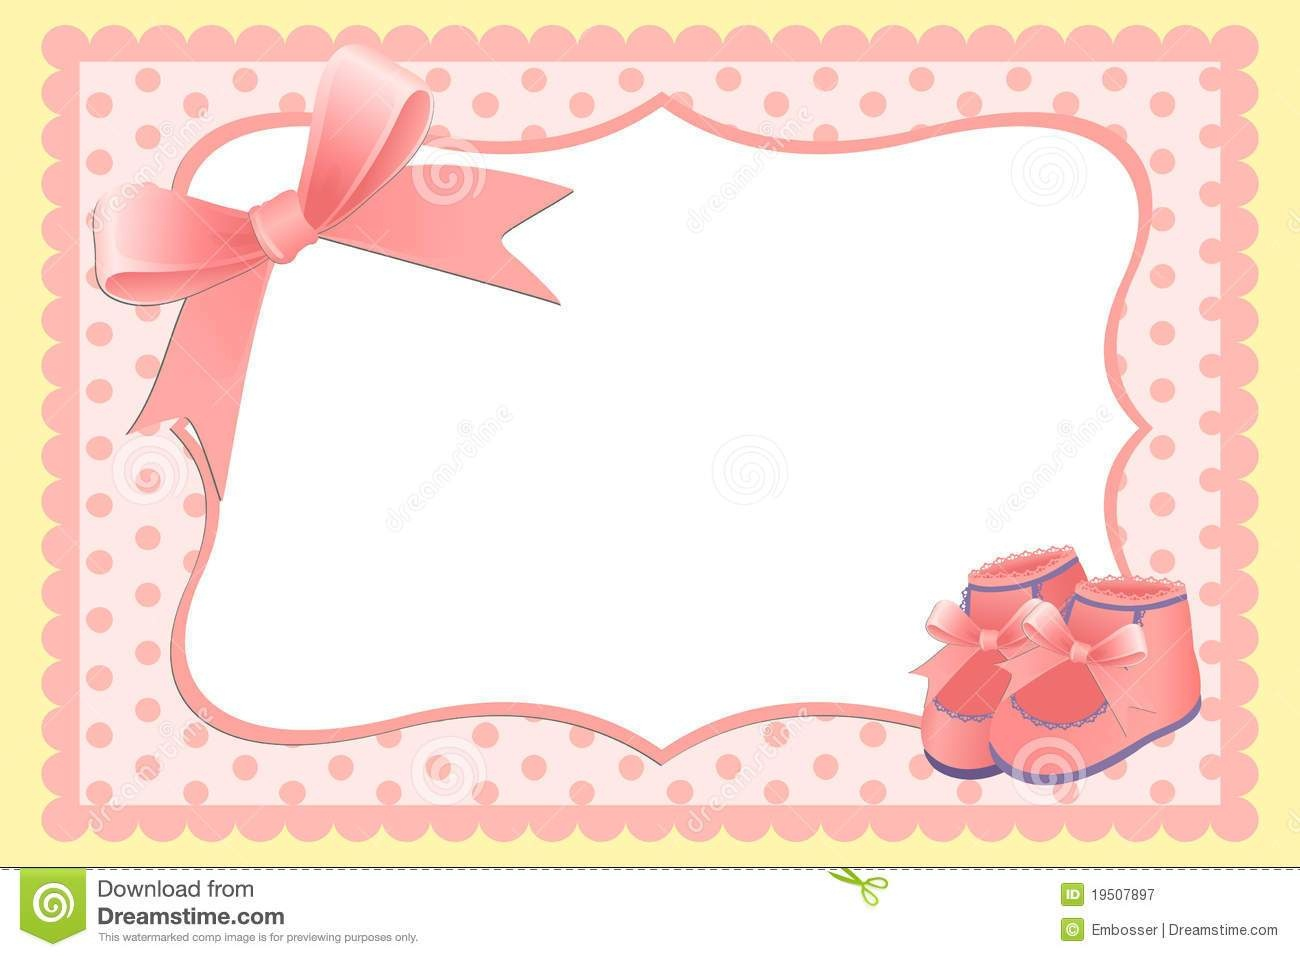 Free Printable Baby Cards Templates – Printall - Free Printable Baby Cards Templates